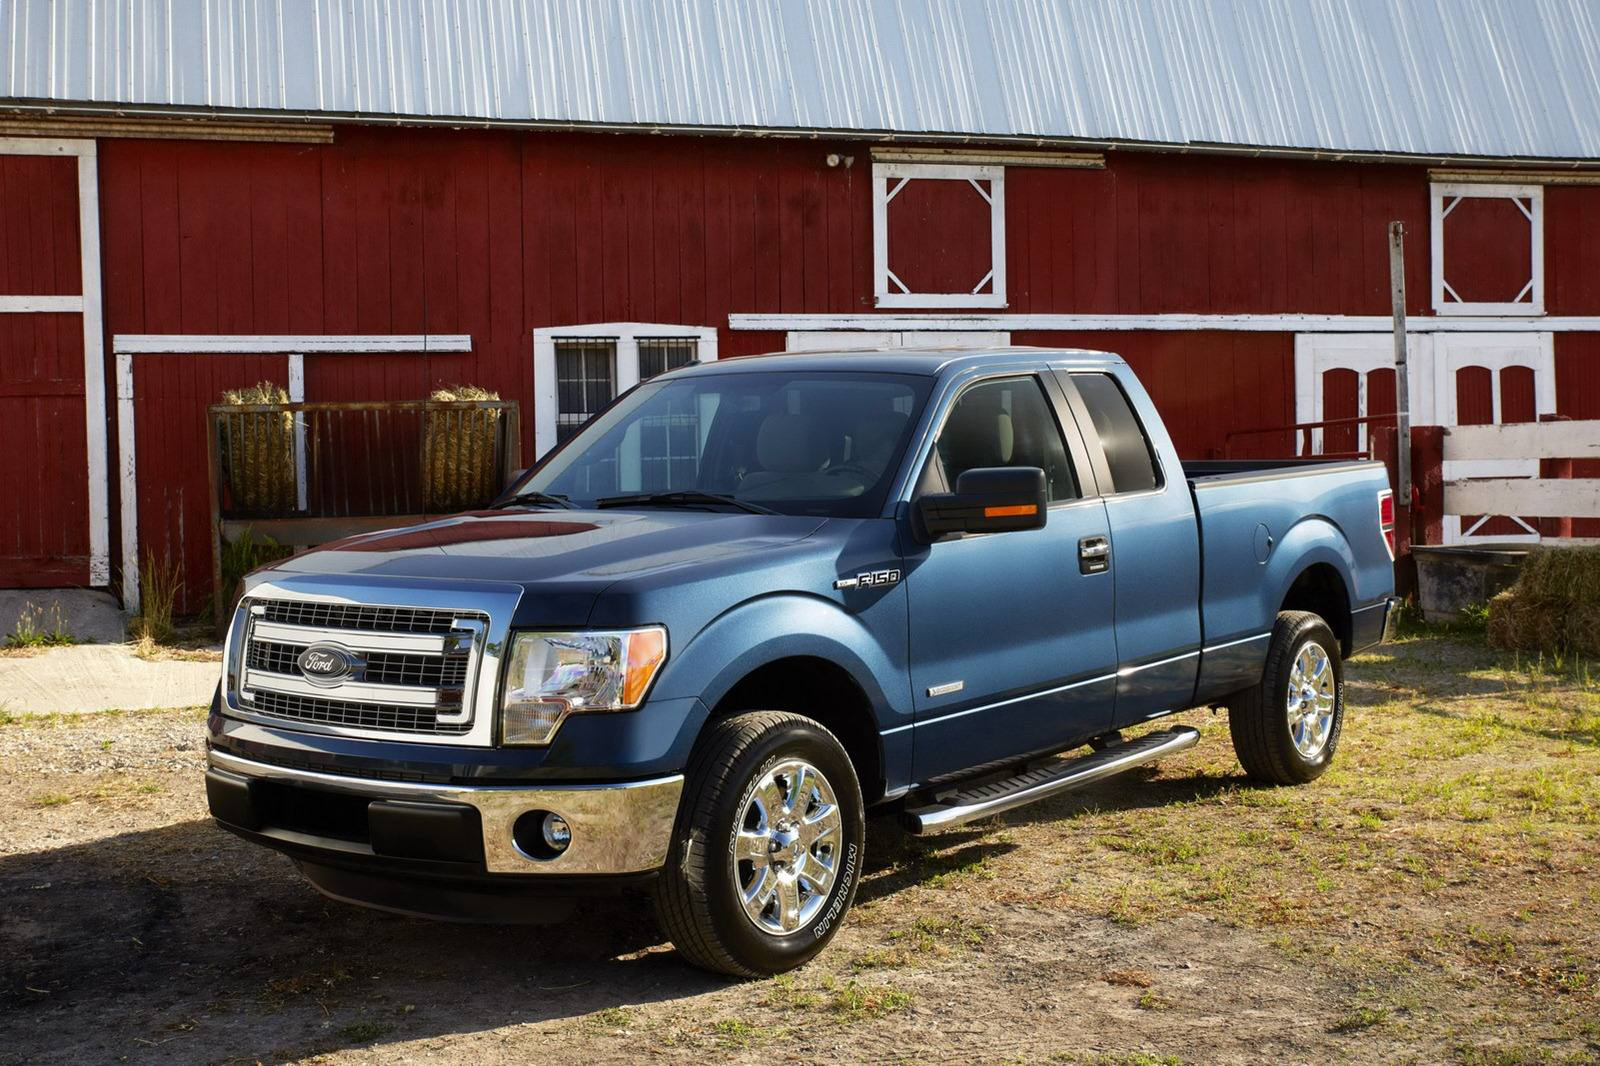 2013-ford-f-150-gets-styling-tweaks-and-upgrades-photo-gallery_27